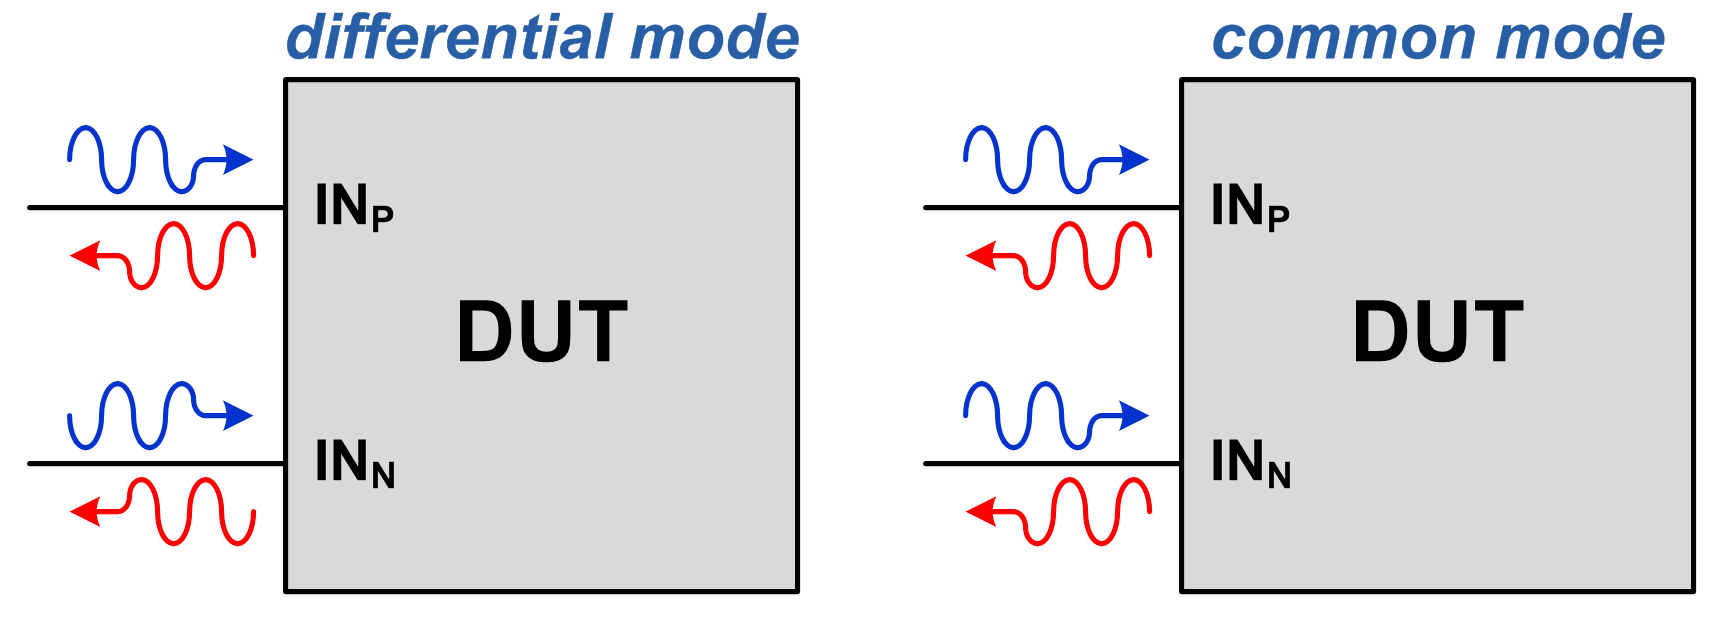 Figure 2: Differential- vs. common-mode waves